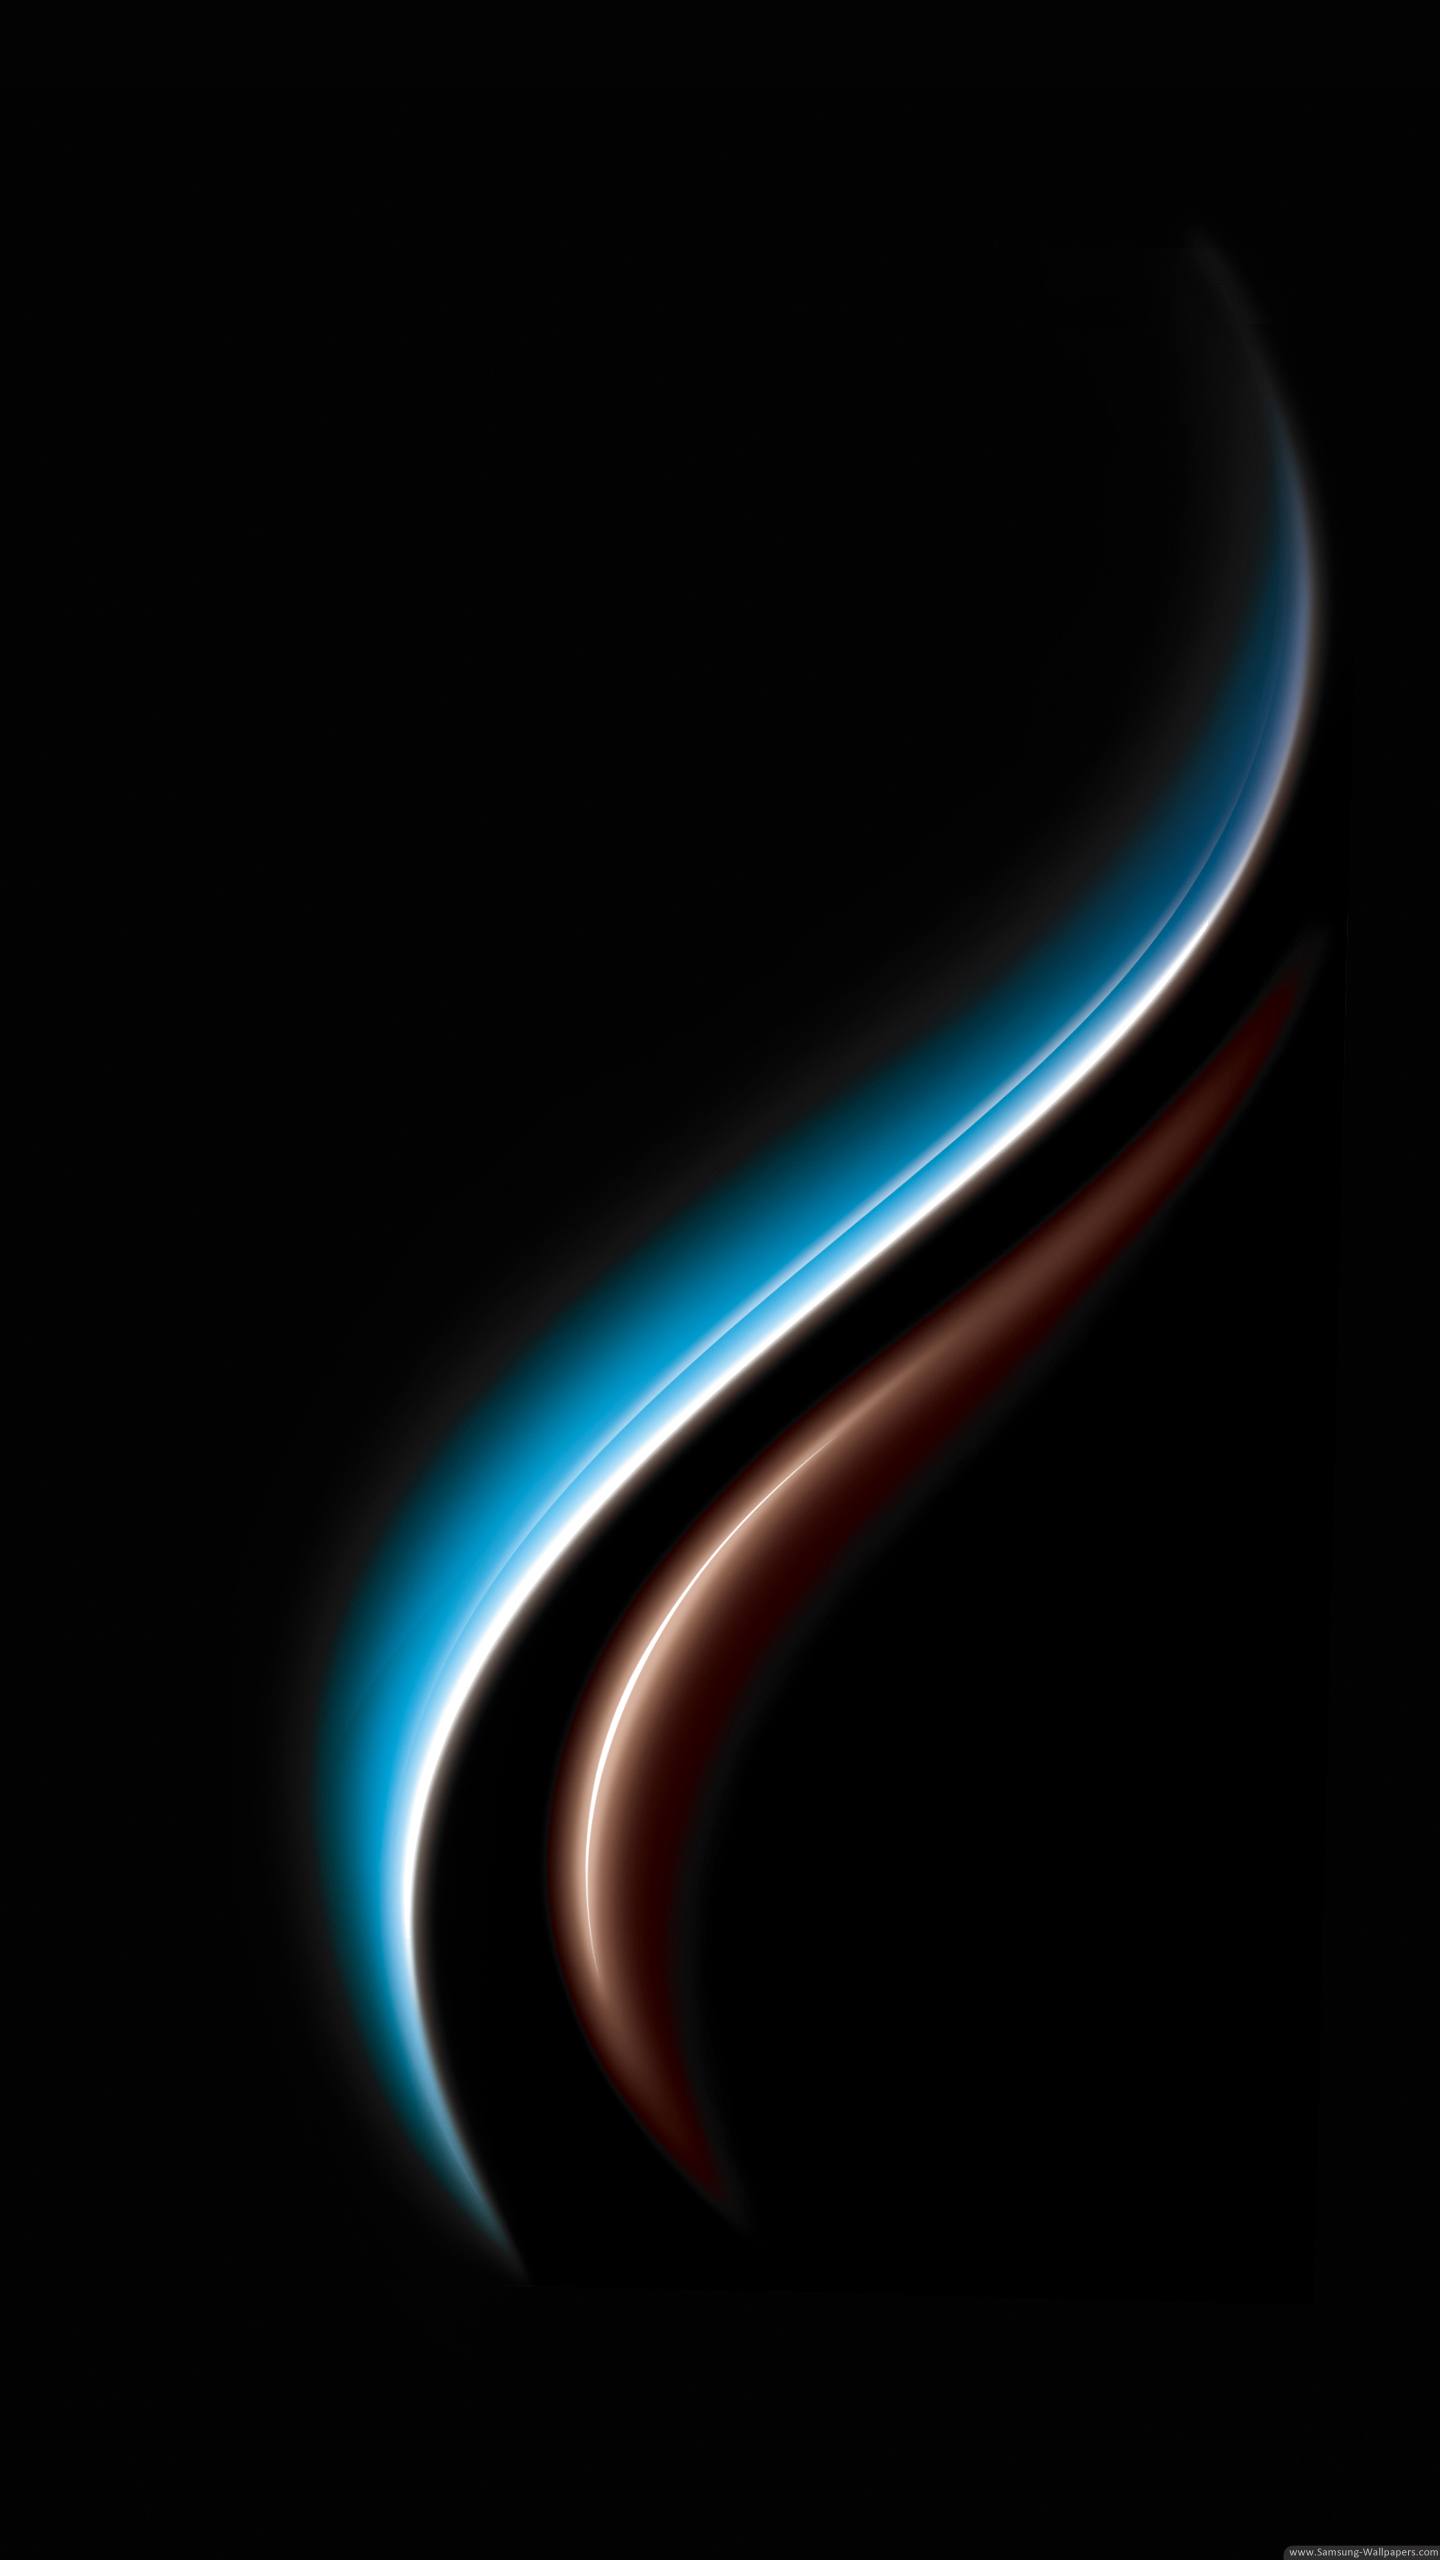 Samsung Wallpapers Top Free Samsung Backgrounds Wallpaperaccess